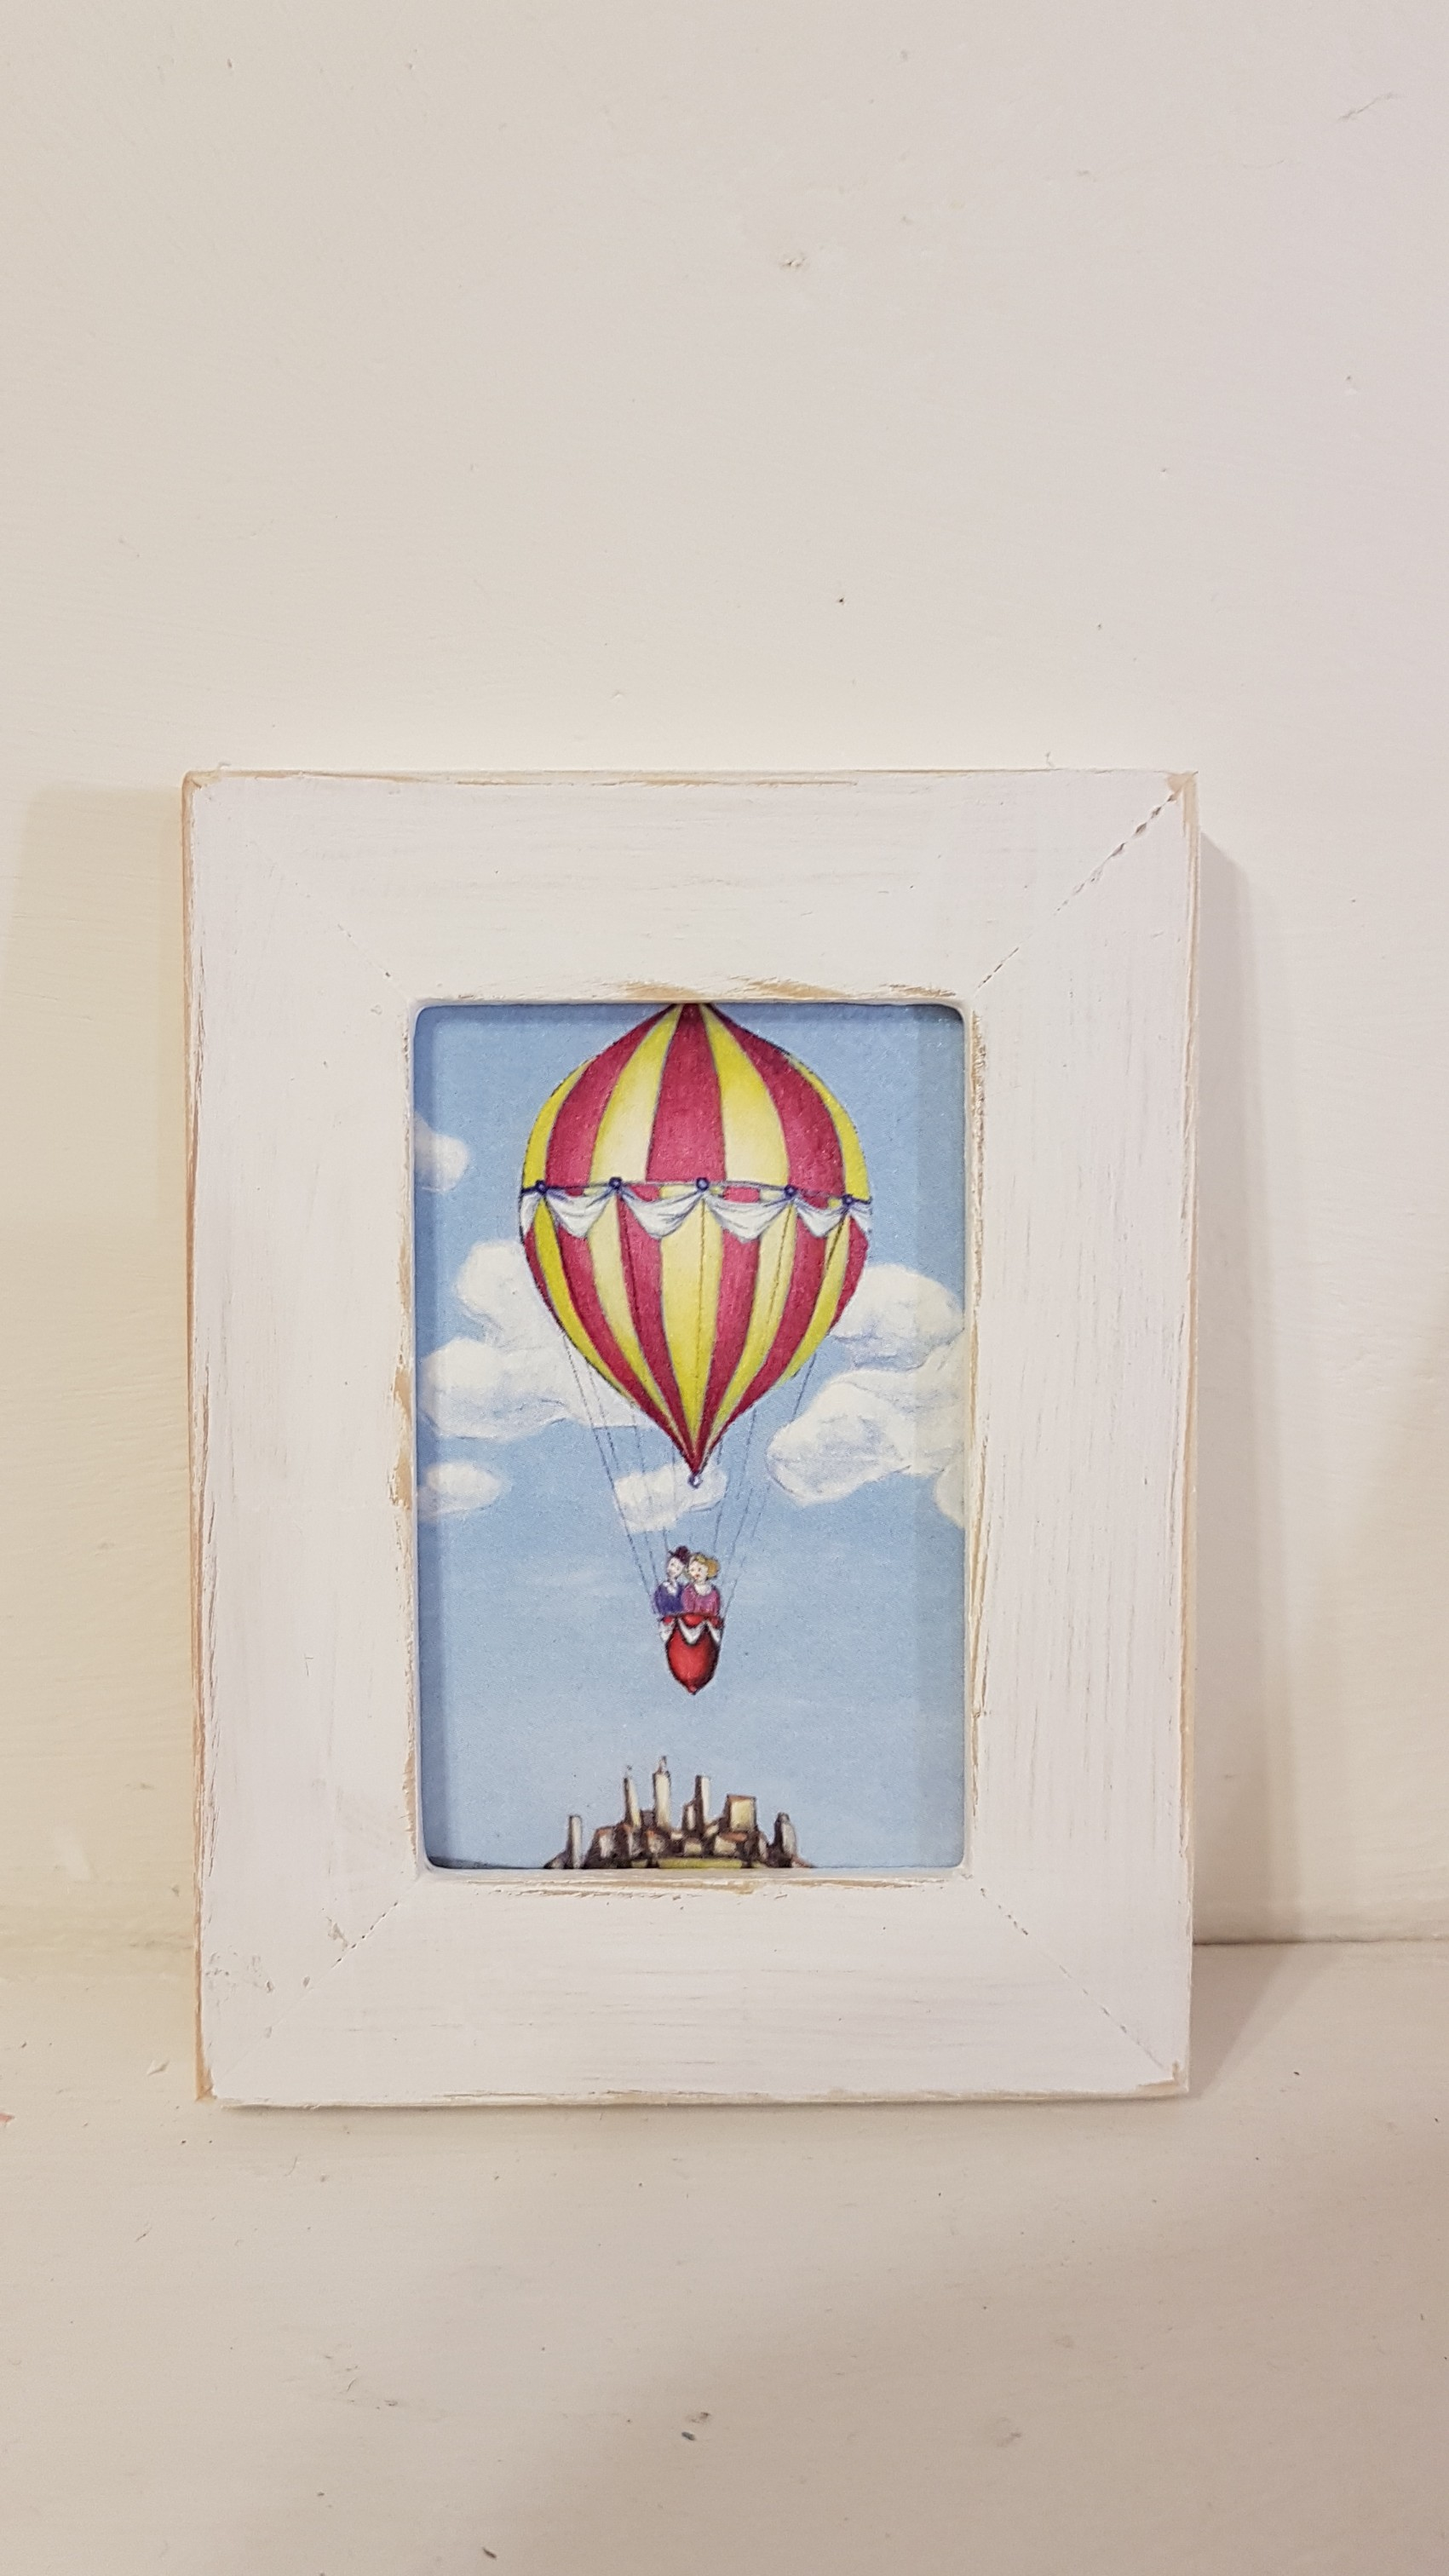 Mongolfiera di Teodolindo con cornice, hot air balloon with frame